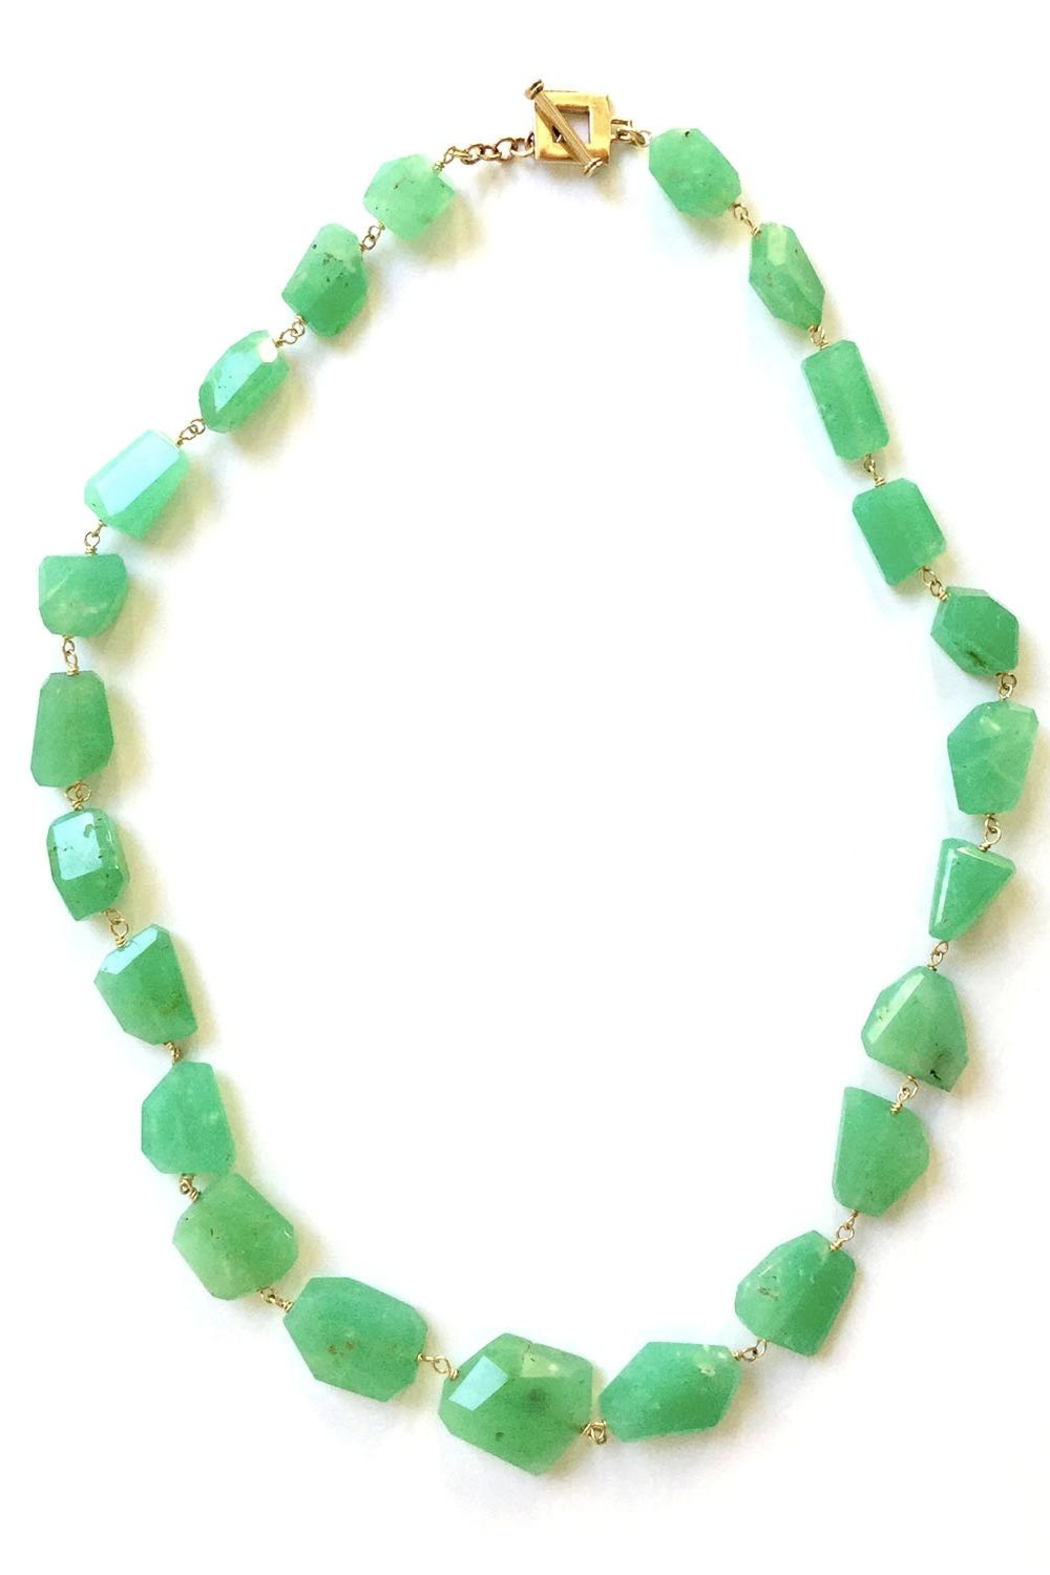 necklace debs diamonds letternoon fbrt shop khk products with chrysoprase pendant christina